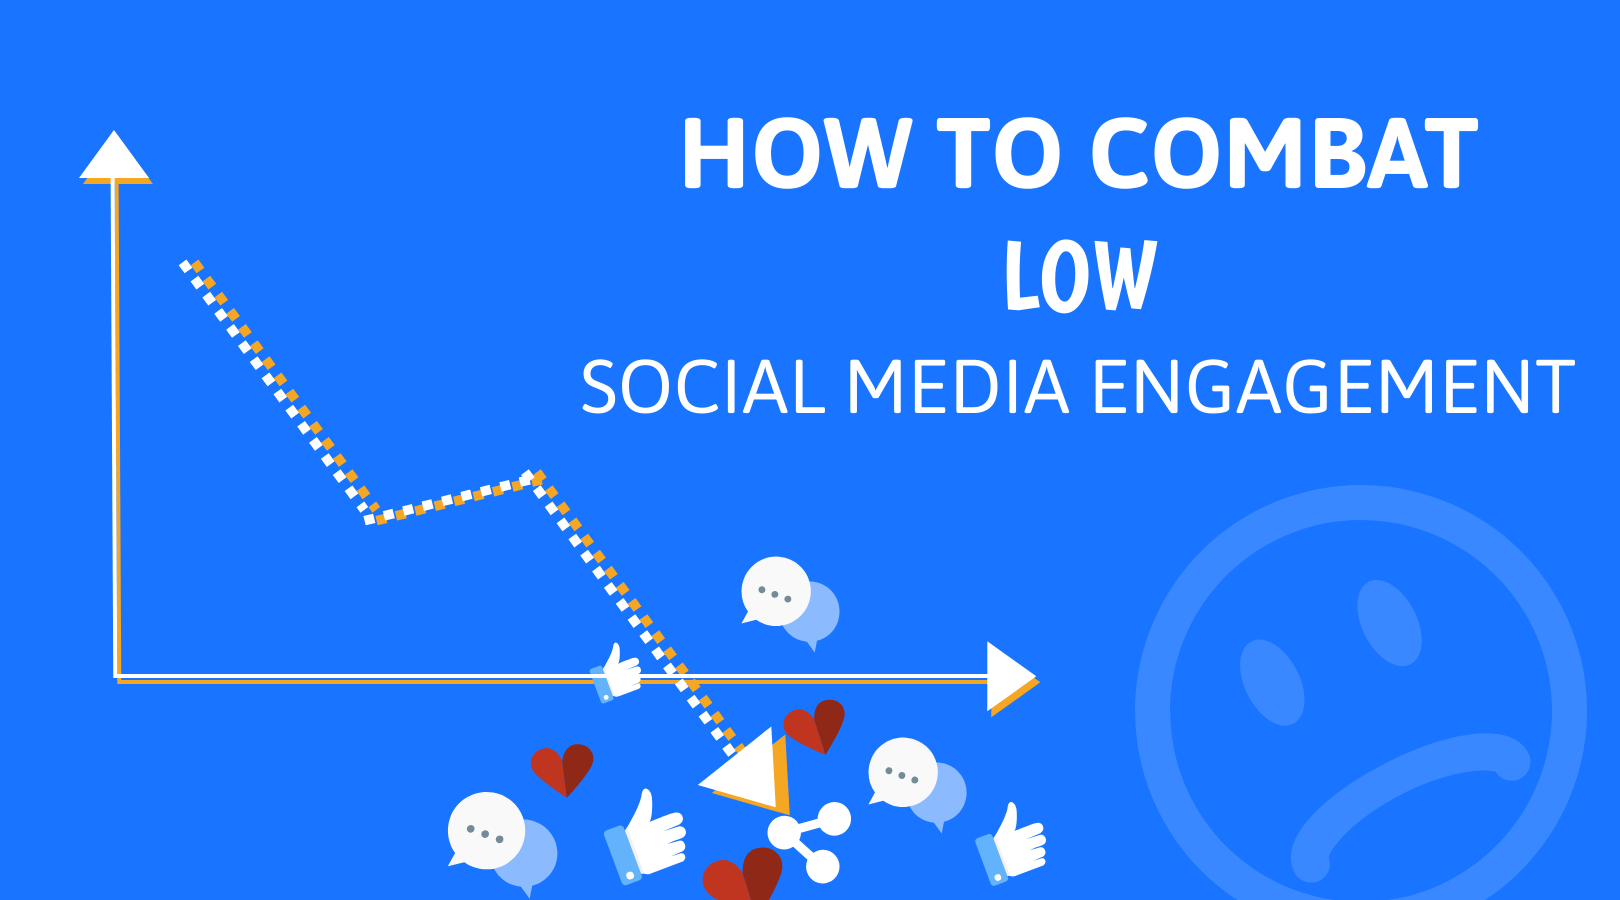 2 How to combat low social media engagement